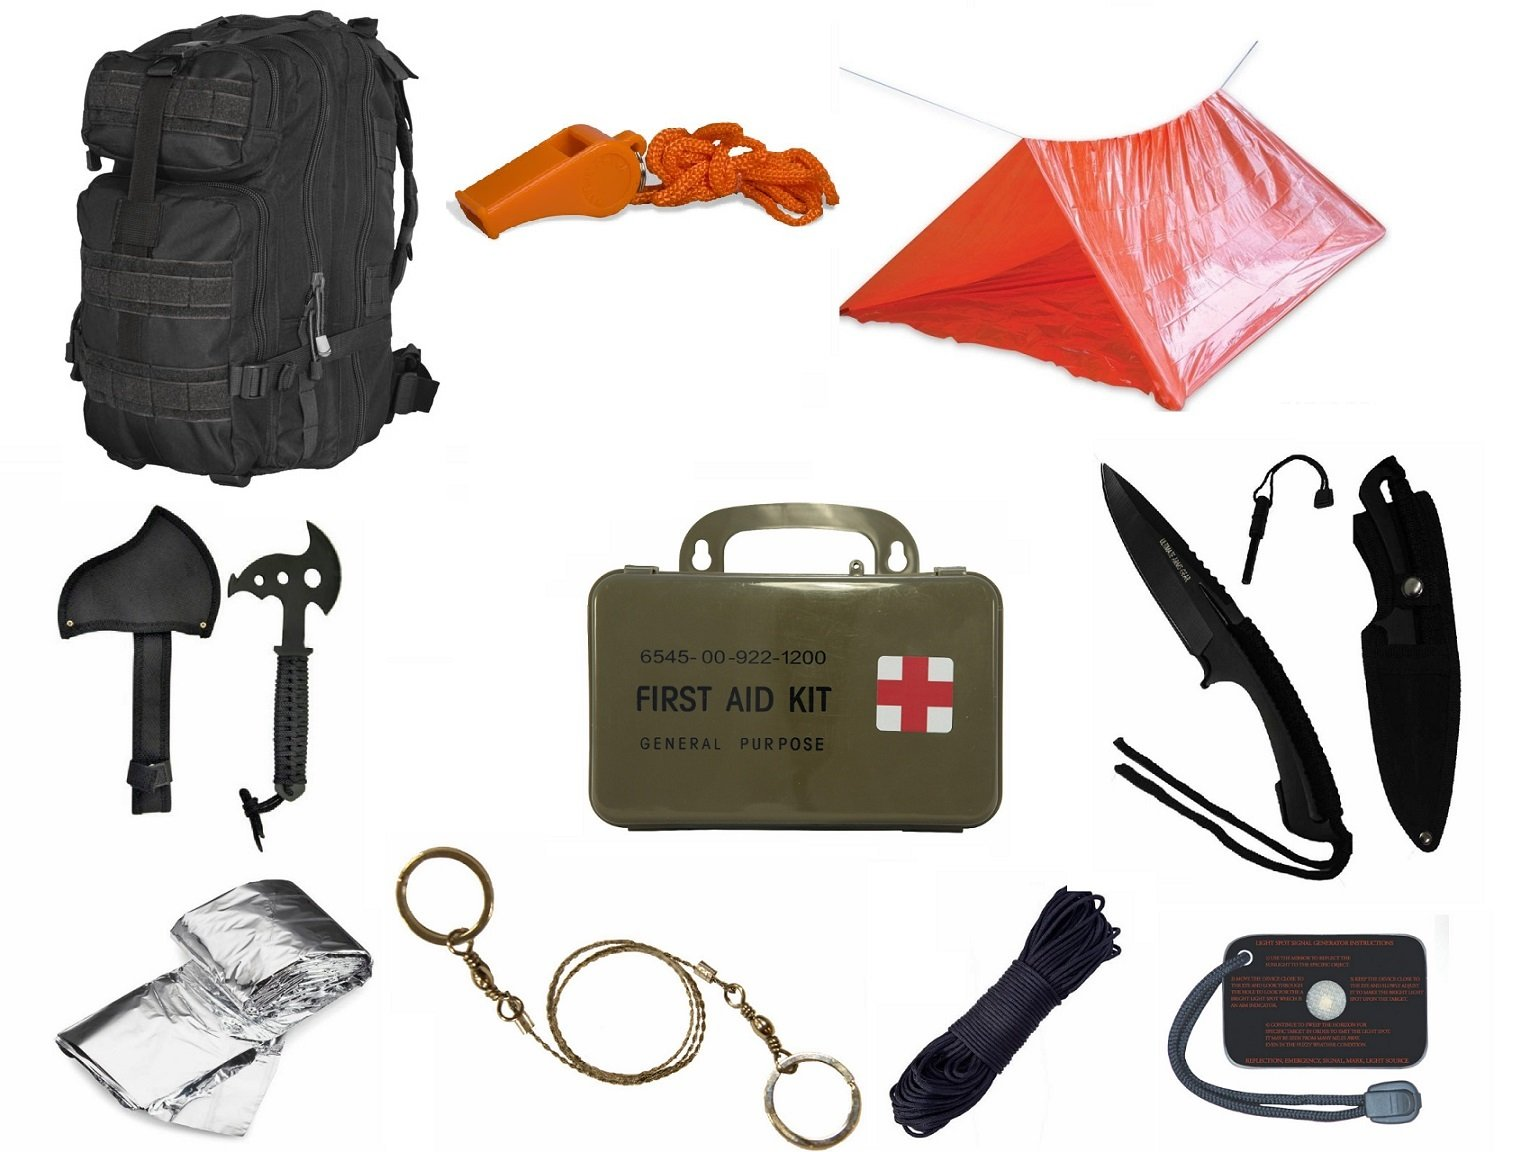 Ultimate Arms Gear Level 3 Assault MOLLE Black Backpack Kit; Signal Mirror, Polarshield Blanket, Knife Fire Starter, Wire Saw, Axe, 50' Foot Paracord, Camping Tube Tent, Whistle & First Aid Kit